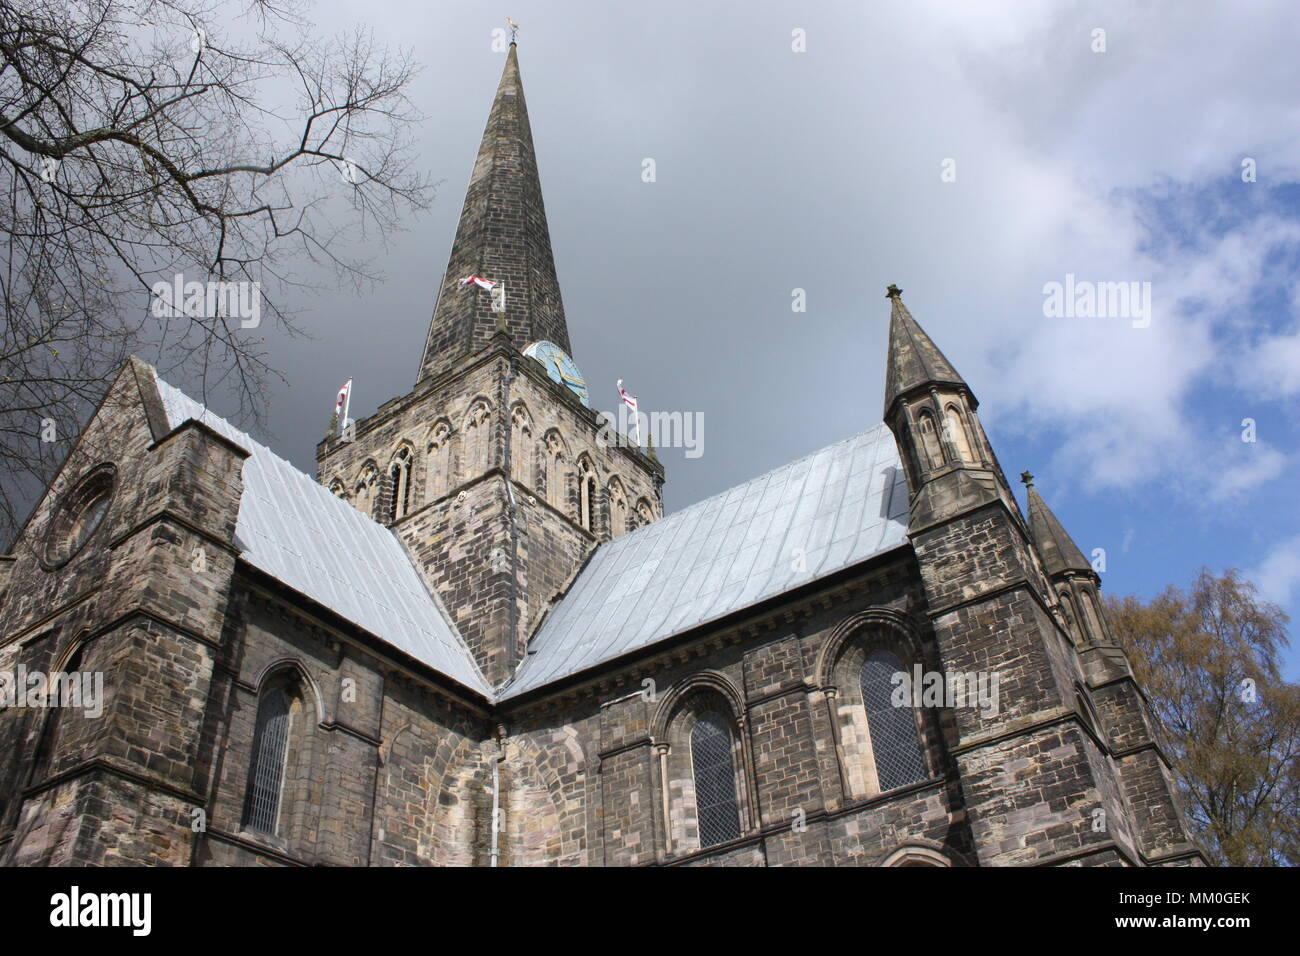 St Cuthbert's Church in Darlington in the morning Stock Photo